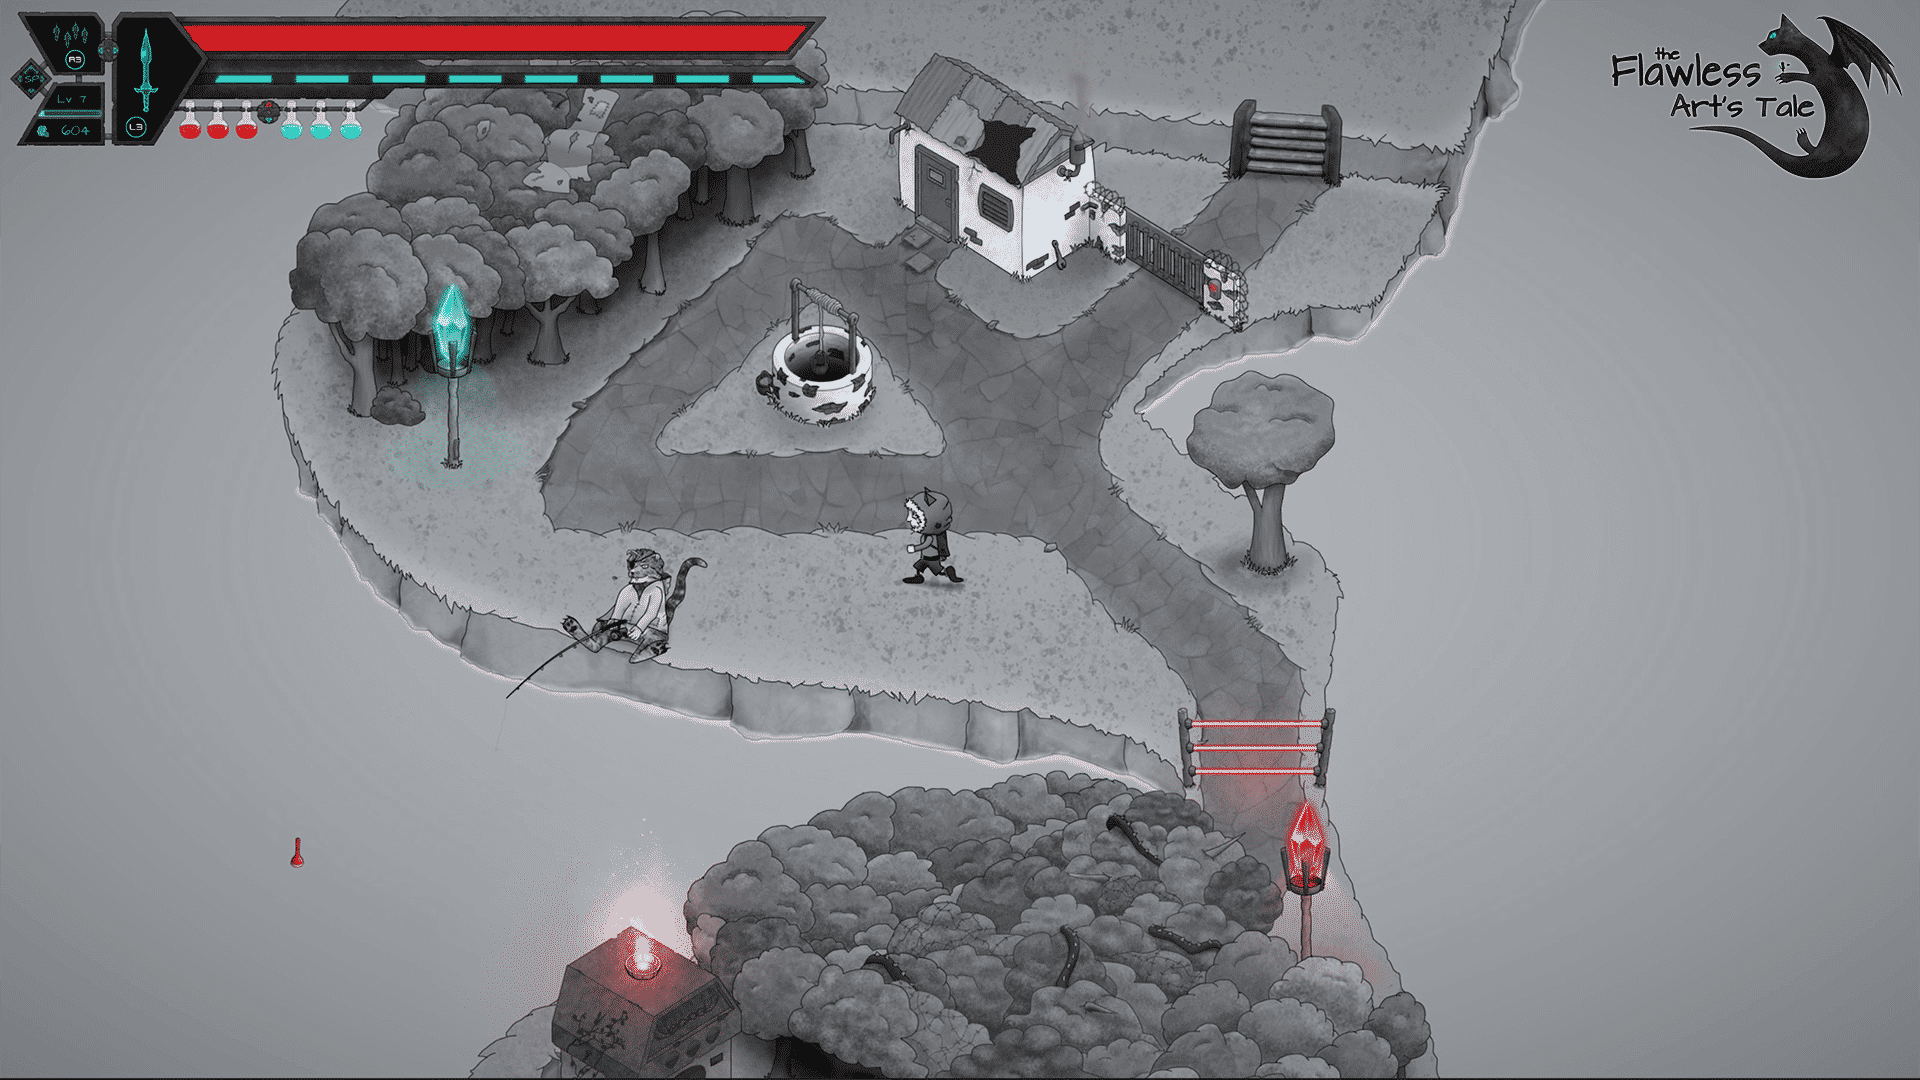 the flawless arts tale a new metroidvania world map fishing in linux mac windows pc games